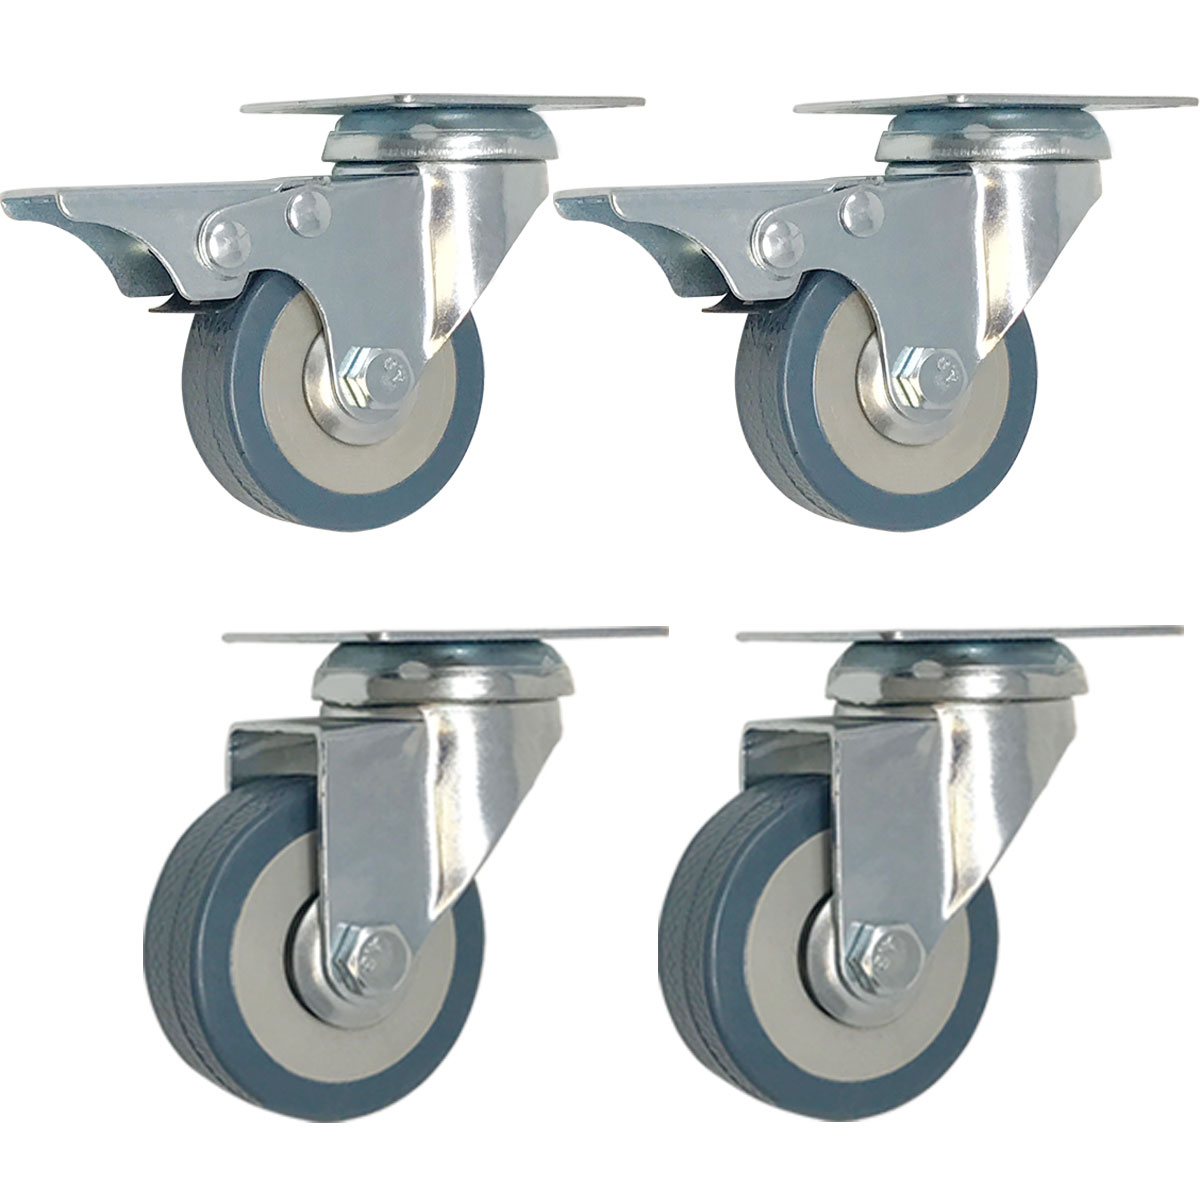 4 Pack 2 Inch Set Caster Wheels Swivel Plate Combo 2 with Brake 2 Plate Heavy Duty Polyurethane Wheels